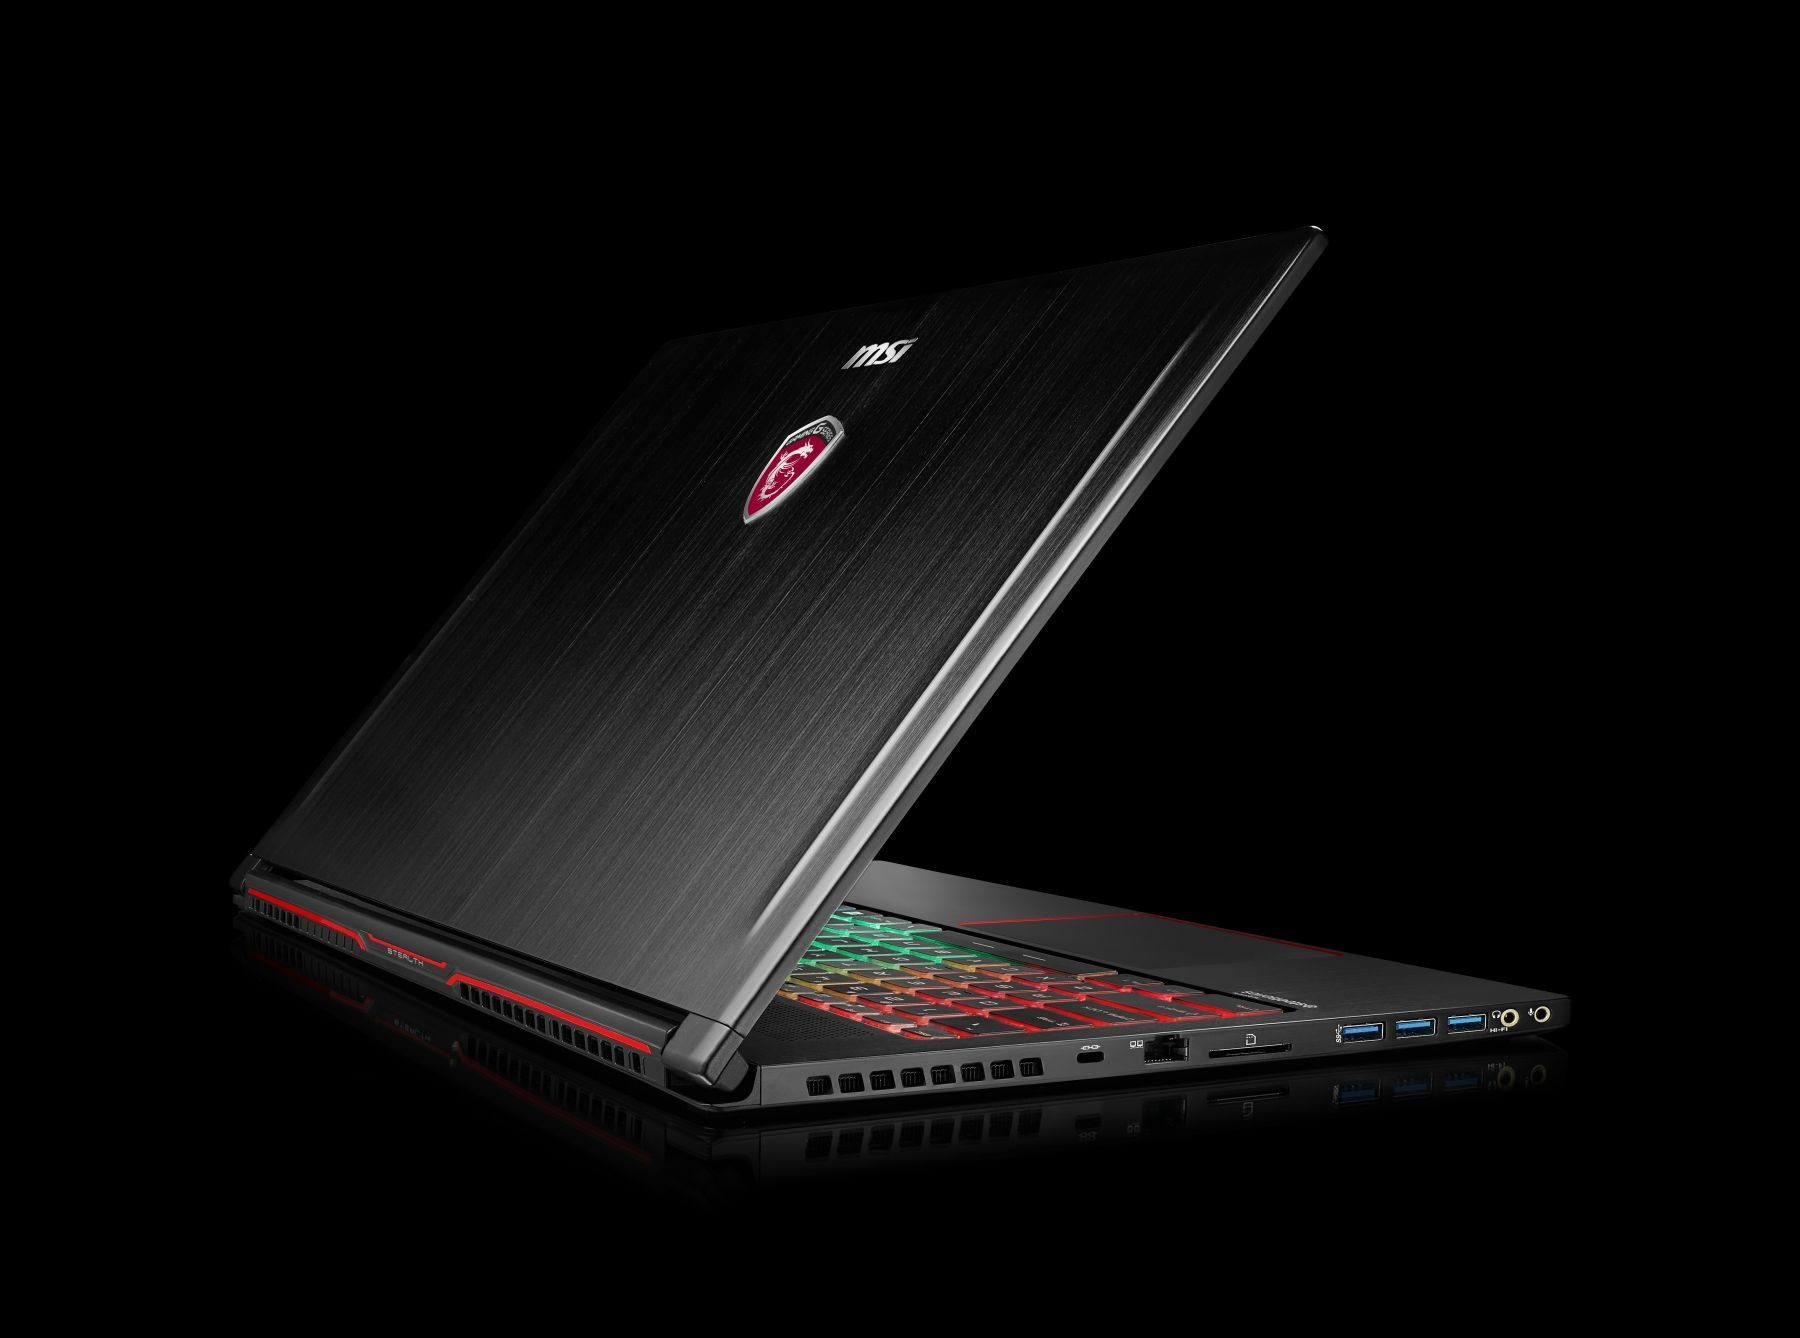 Ноутбук MSI GS63 7RD-064RU 9S7-16K412-064 (Intel Core i7-7700HQ 2.8 GHz/16384Mb/256Gb SSD/No ODD/nVidia GeForce GTX 1050 2048Mb/Wi-Fi/Bluetooth/Cam/15.6/1920x1080/Windows 10 64-bit)